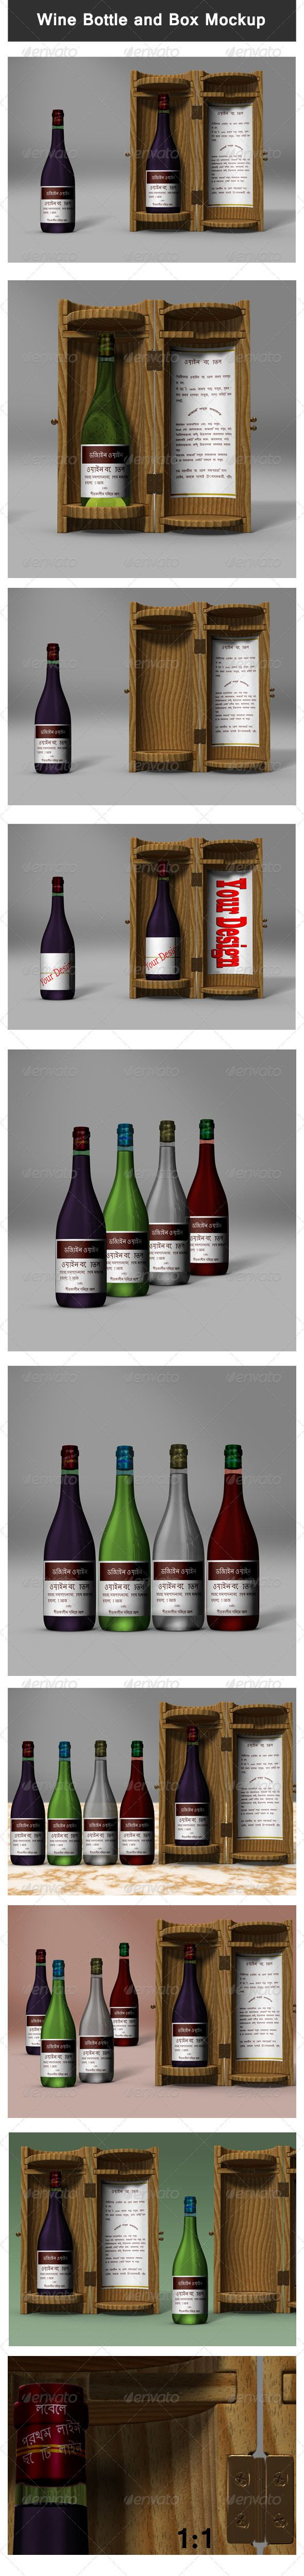 Wine Bottle and Box Mockup — Photoshop PSD #bottle #box • Available here → https://graphicriver.net/item/wine-bottle-and-box-mockup/3280310?ref=pxcr